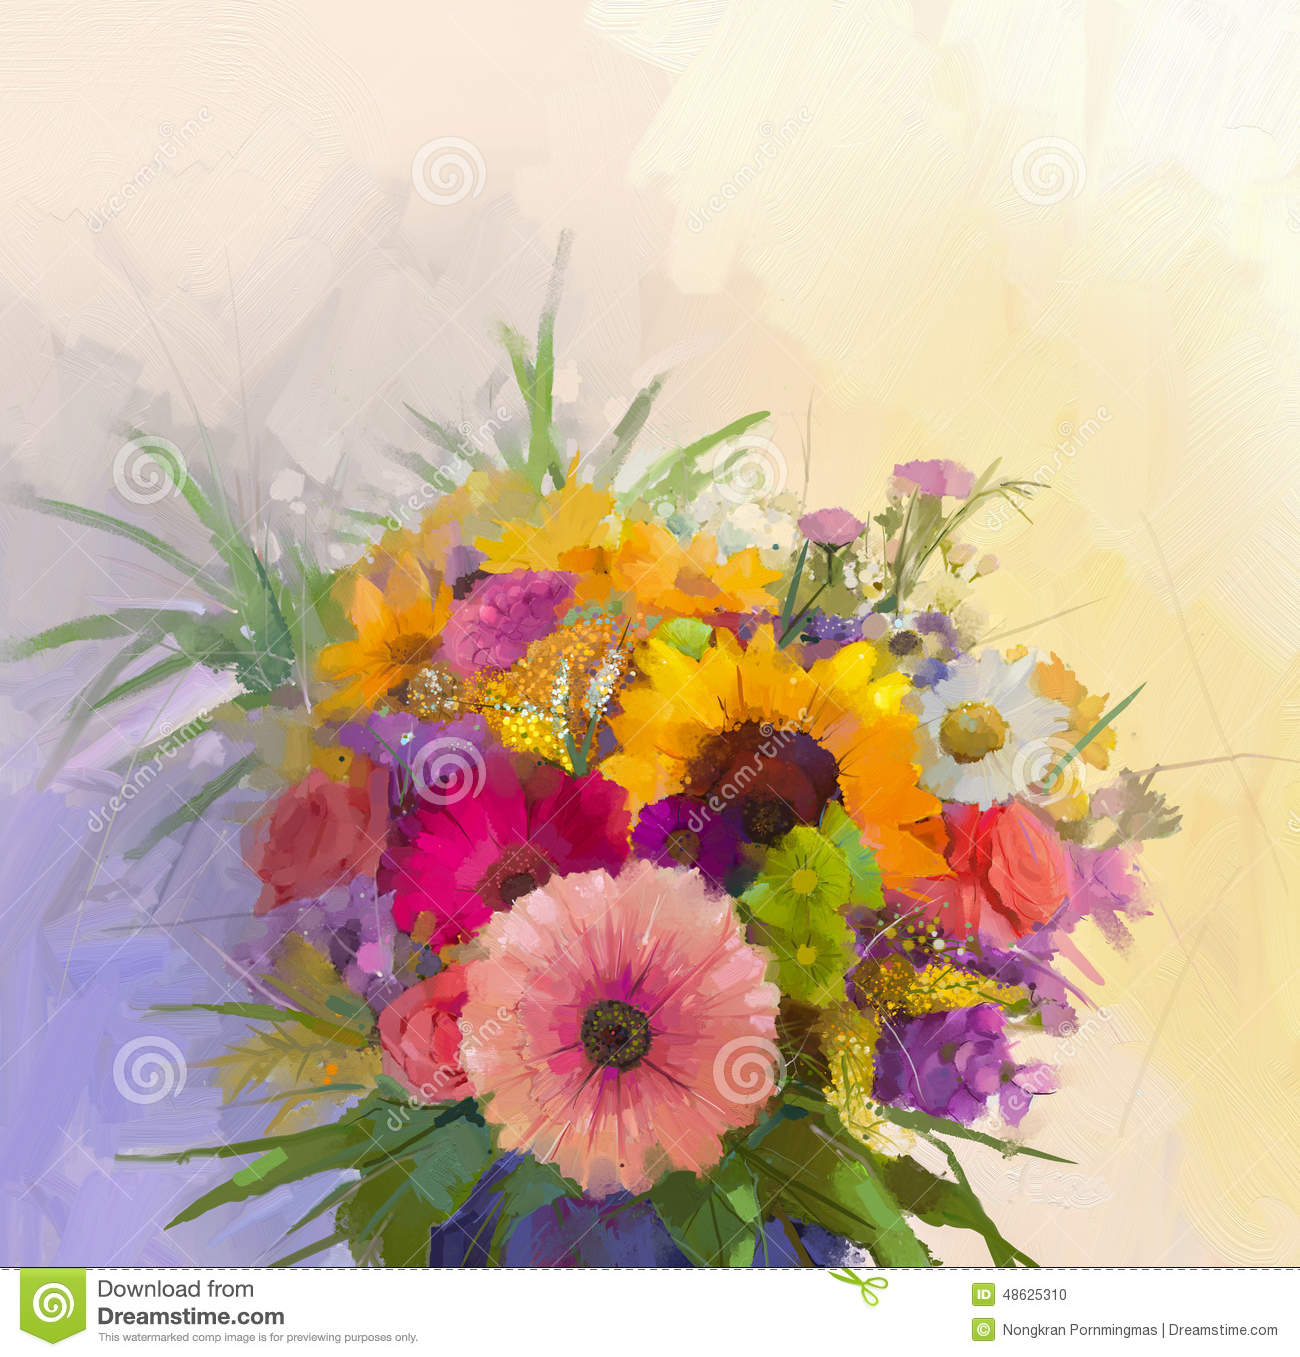 Oil painting still life bouquet flowers in vase stock illustration oil painting still life bouquet flowers in vase izmirmasajfo